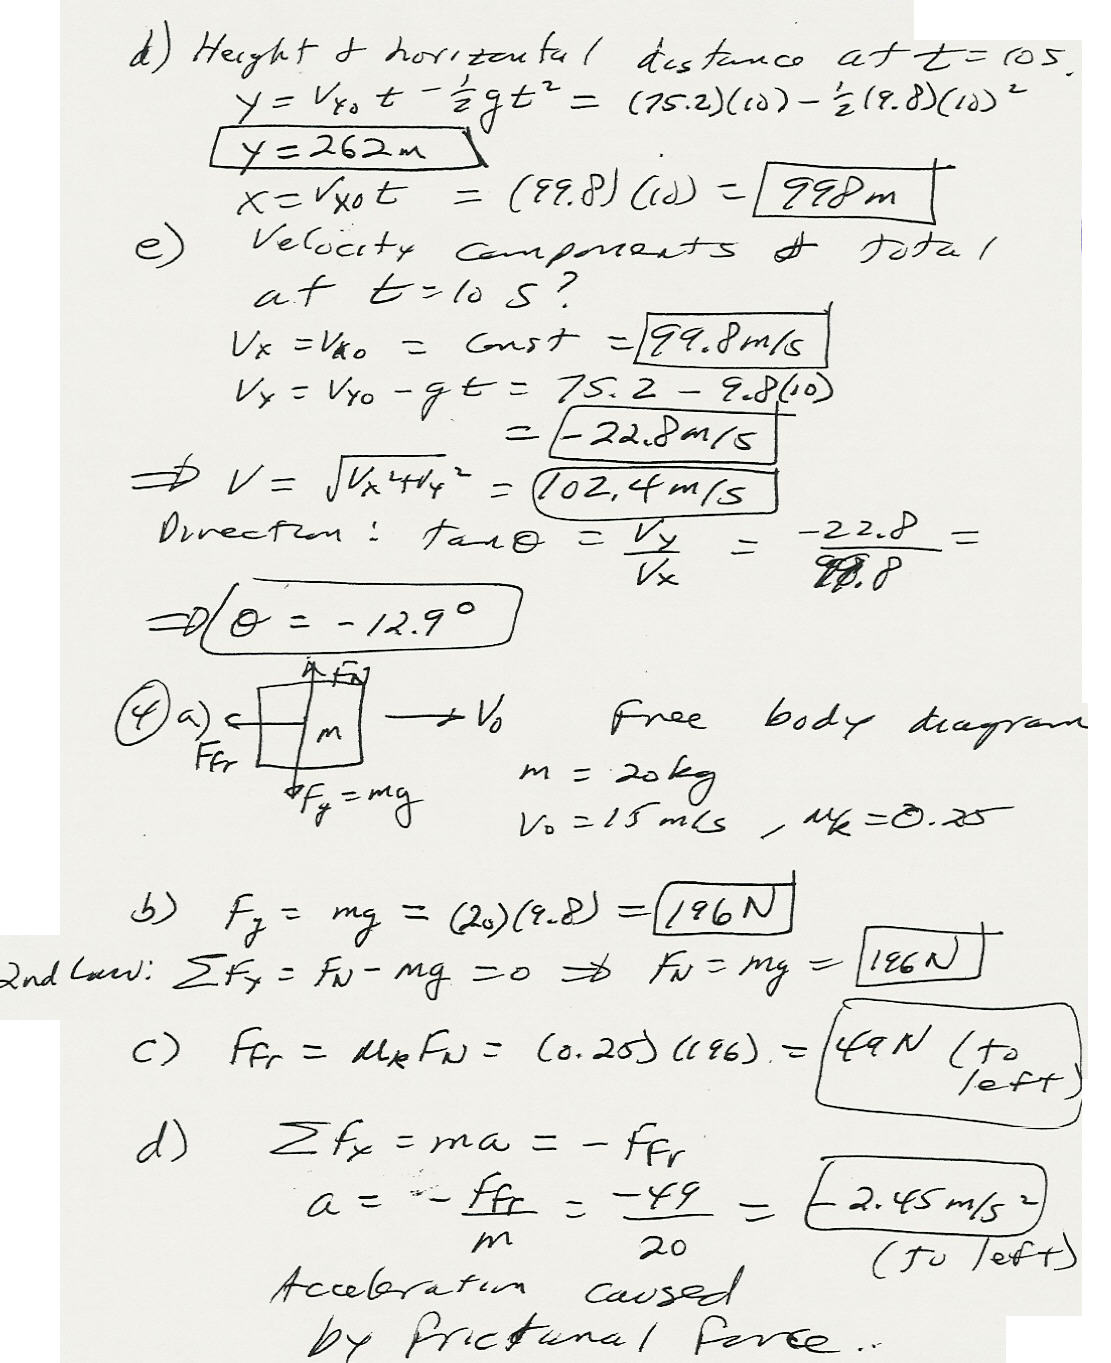 physics 4304 homework Fractions Equivalent to 1 3 solution pages 1 2 3 4 5 6